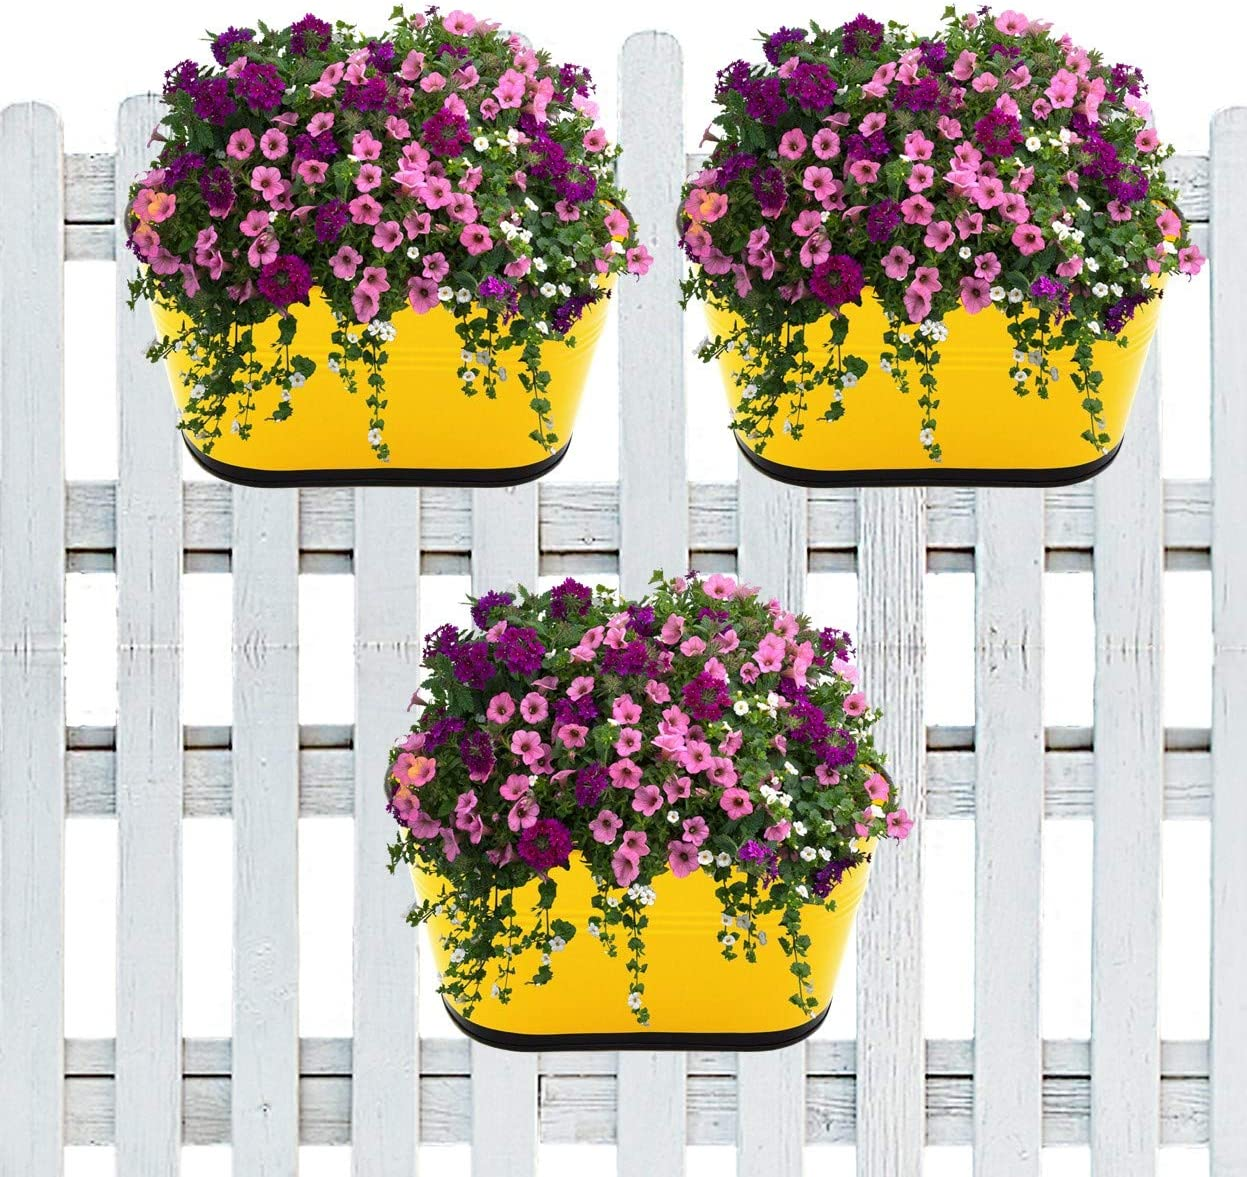 ecofynd 10 inches Oval Metal Rail Planter | Balcony Railing Hanging Plant Pot | Indoor Outdoor Home Decor Deck Flower Box | Window Garden Wall Fence Iron Bucket Container, Color - Shine, Set of 3